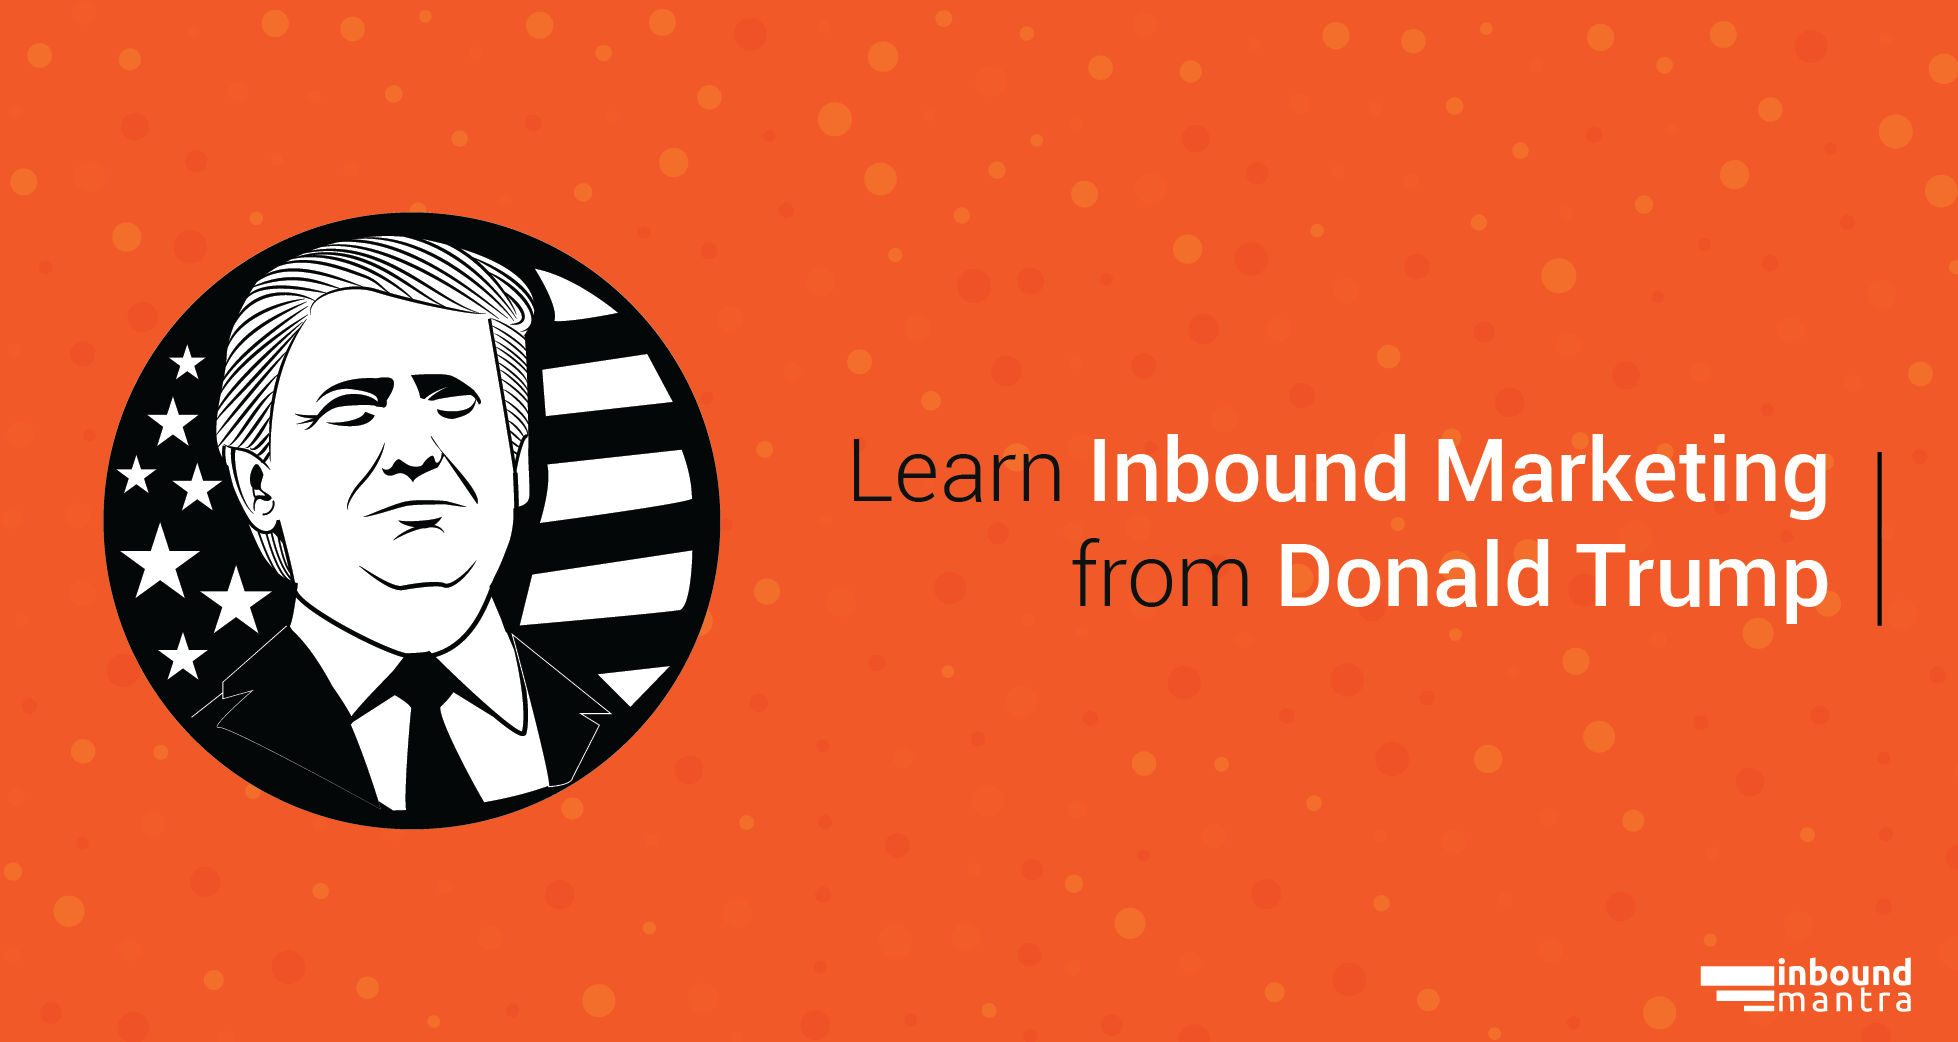 Inbound Marketing Lessons from Donald Trump